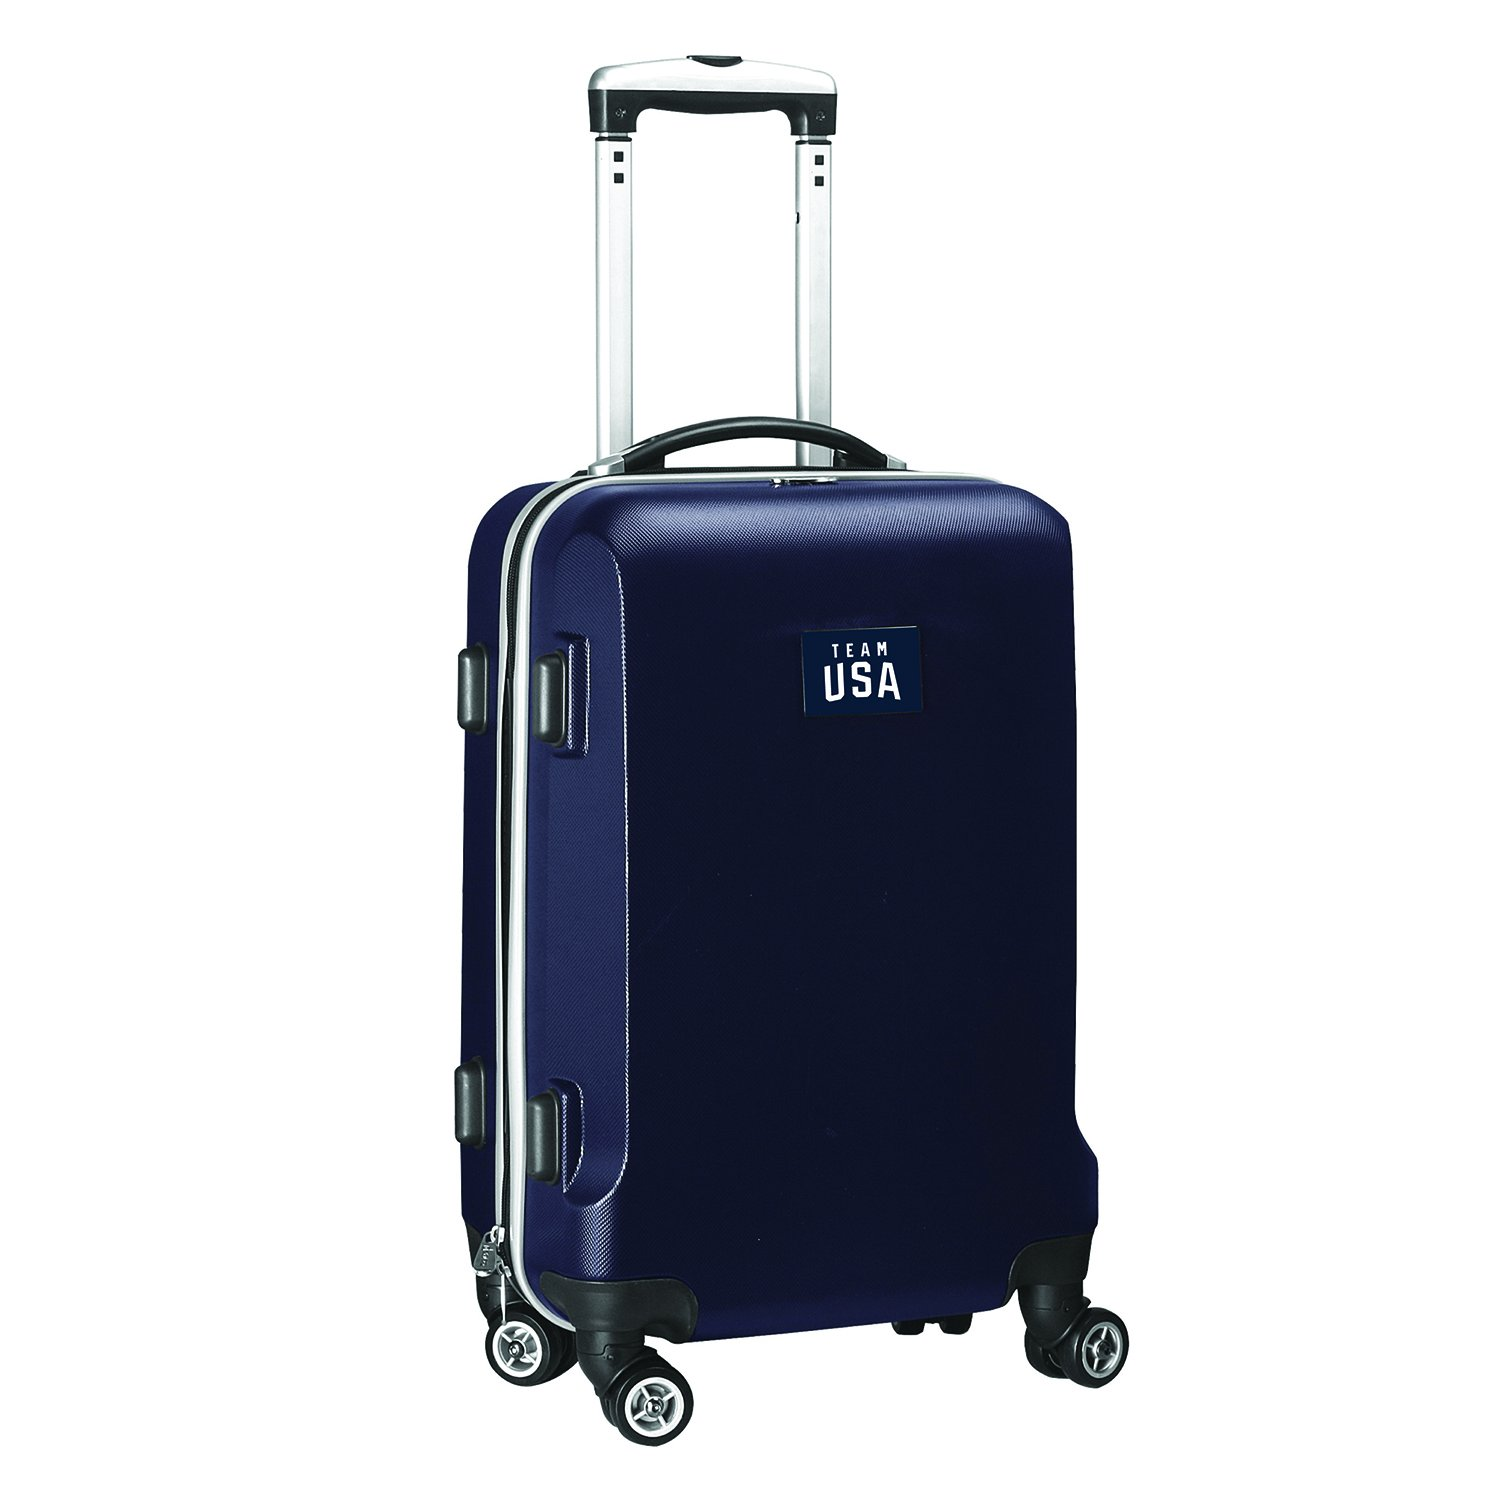 Team USA Olympics Carry-On Hardcase Spinner Luggage, Navy by Denco